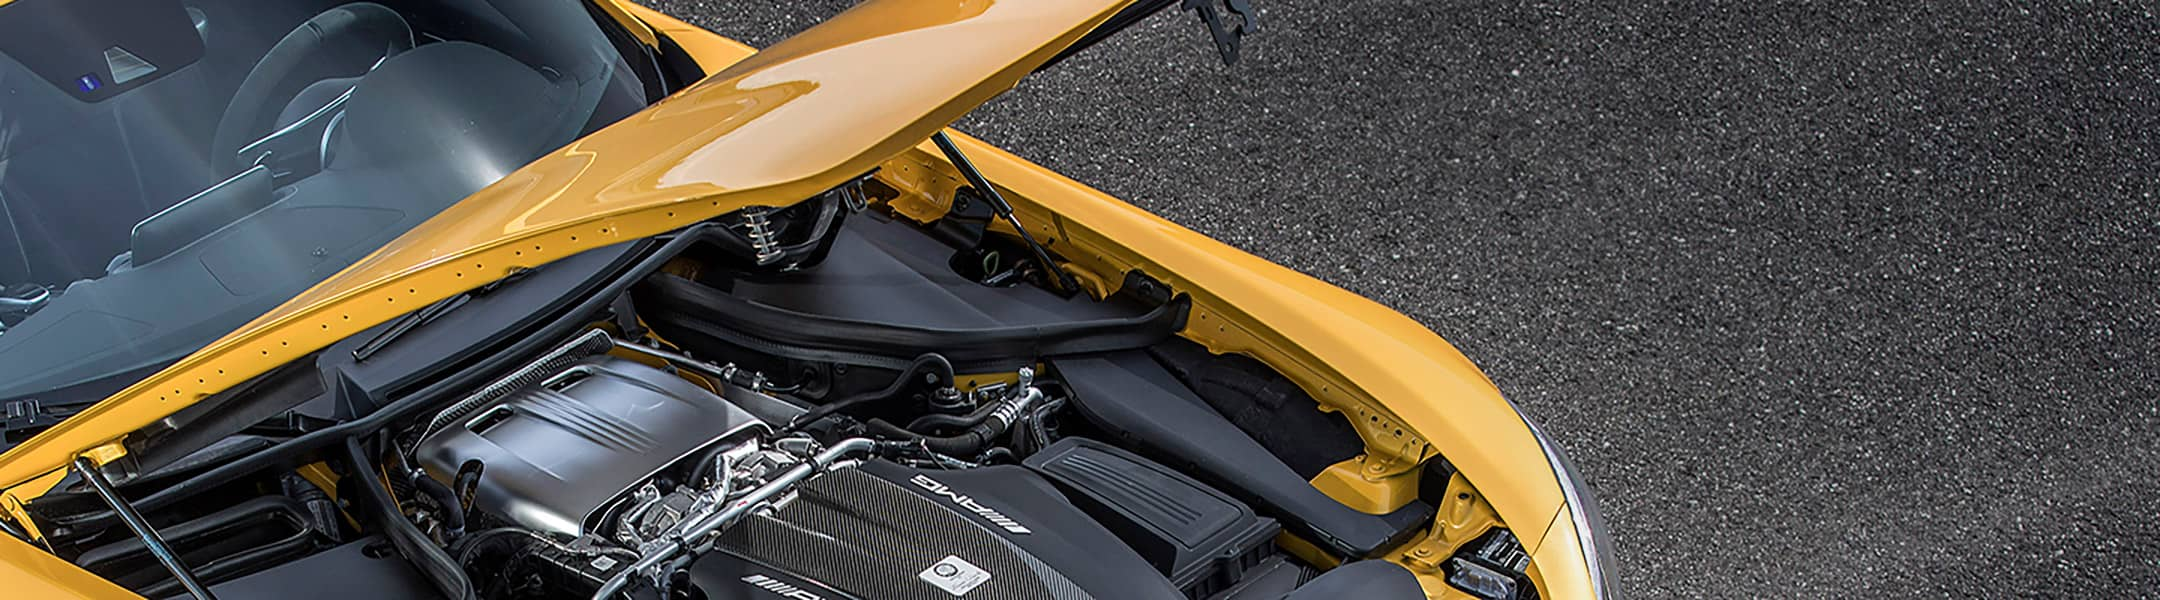 A view under the hood of a yellow Mercedes-AMG GT.